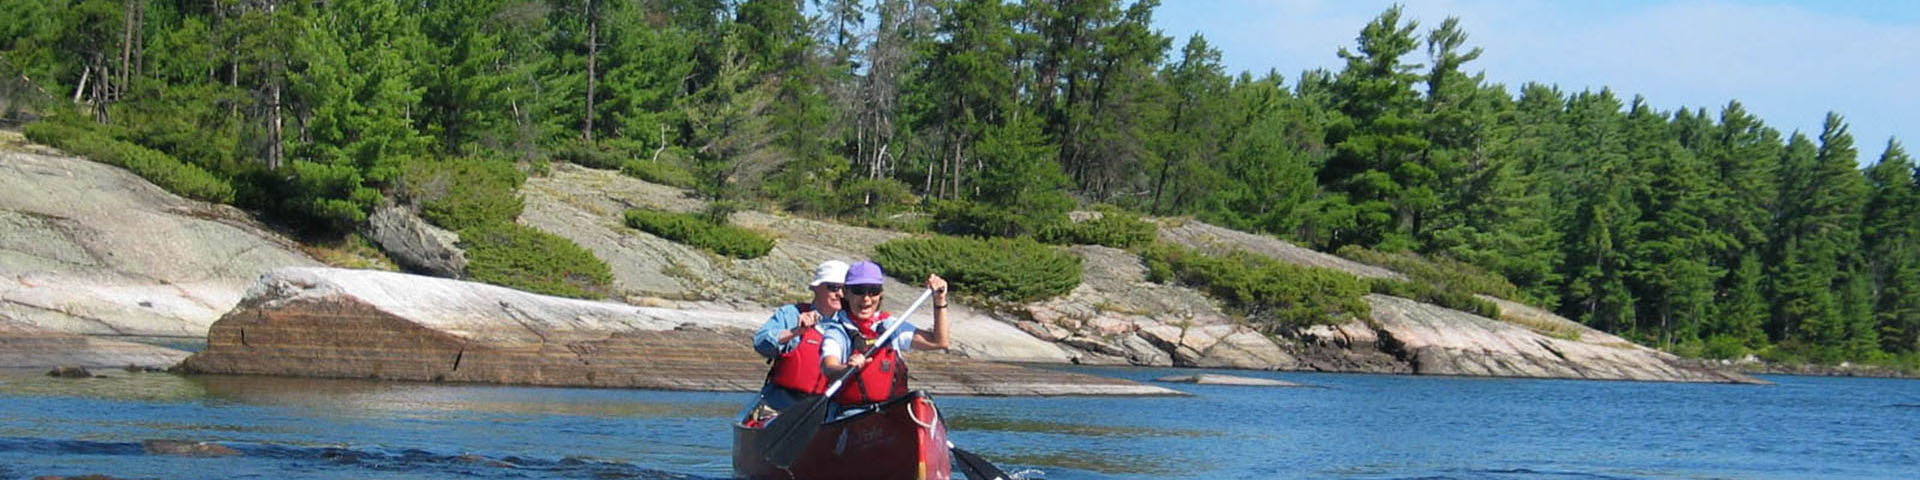 French River Canoe Trip for Women by Black Feather - Image 158